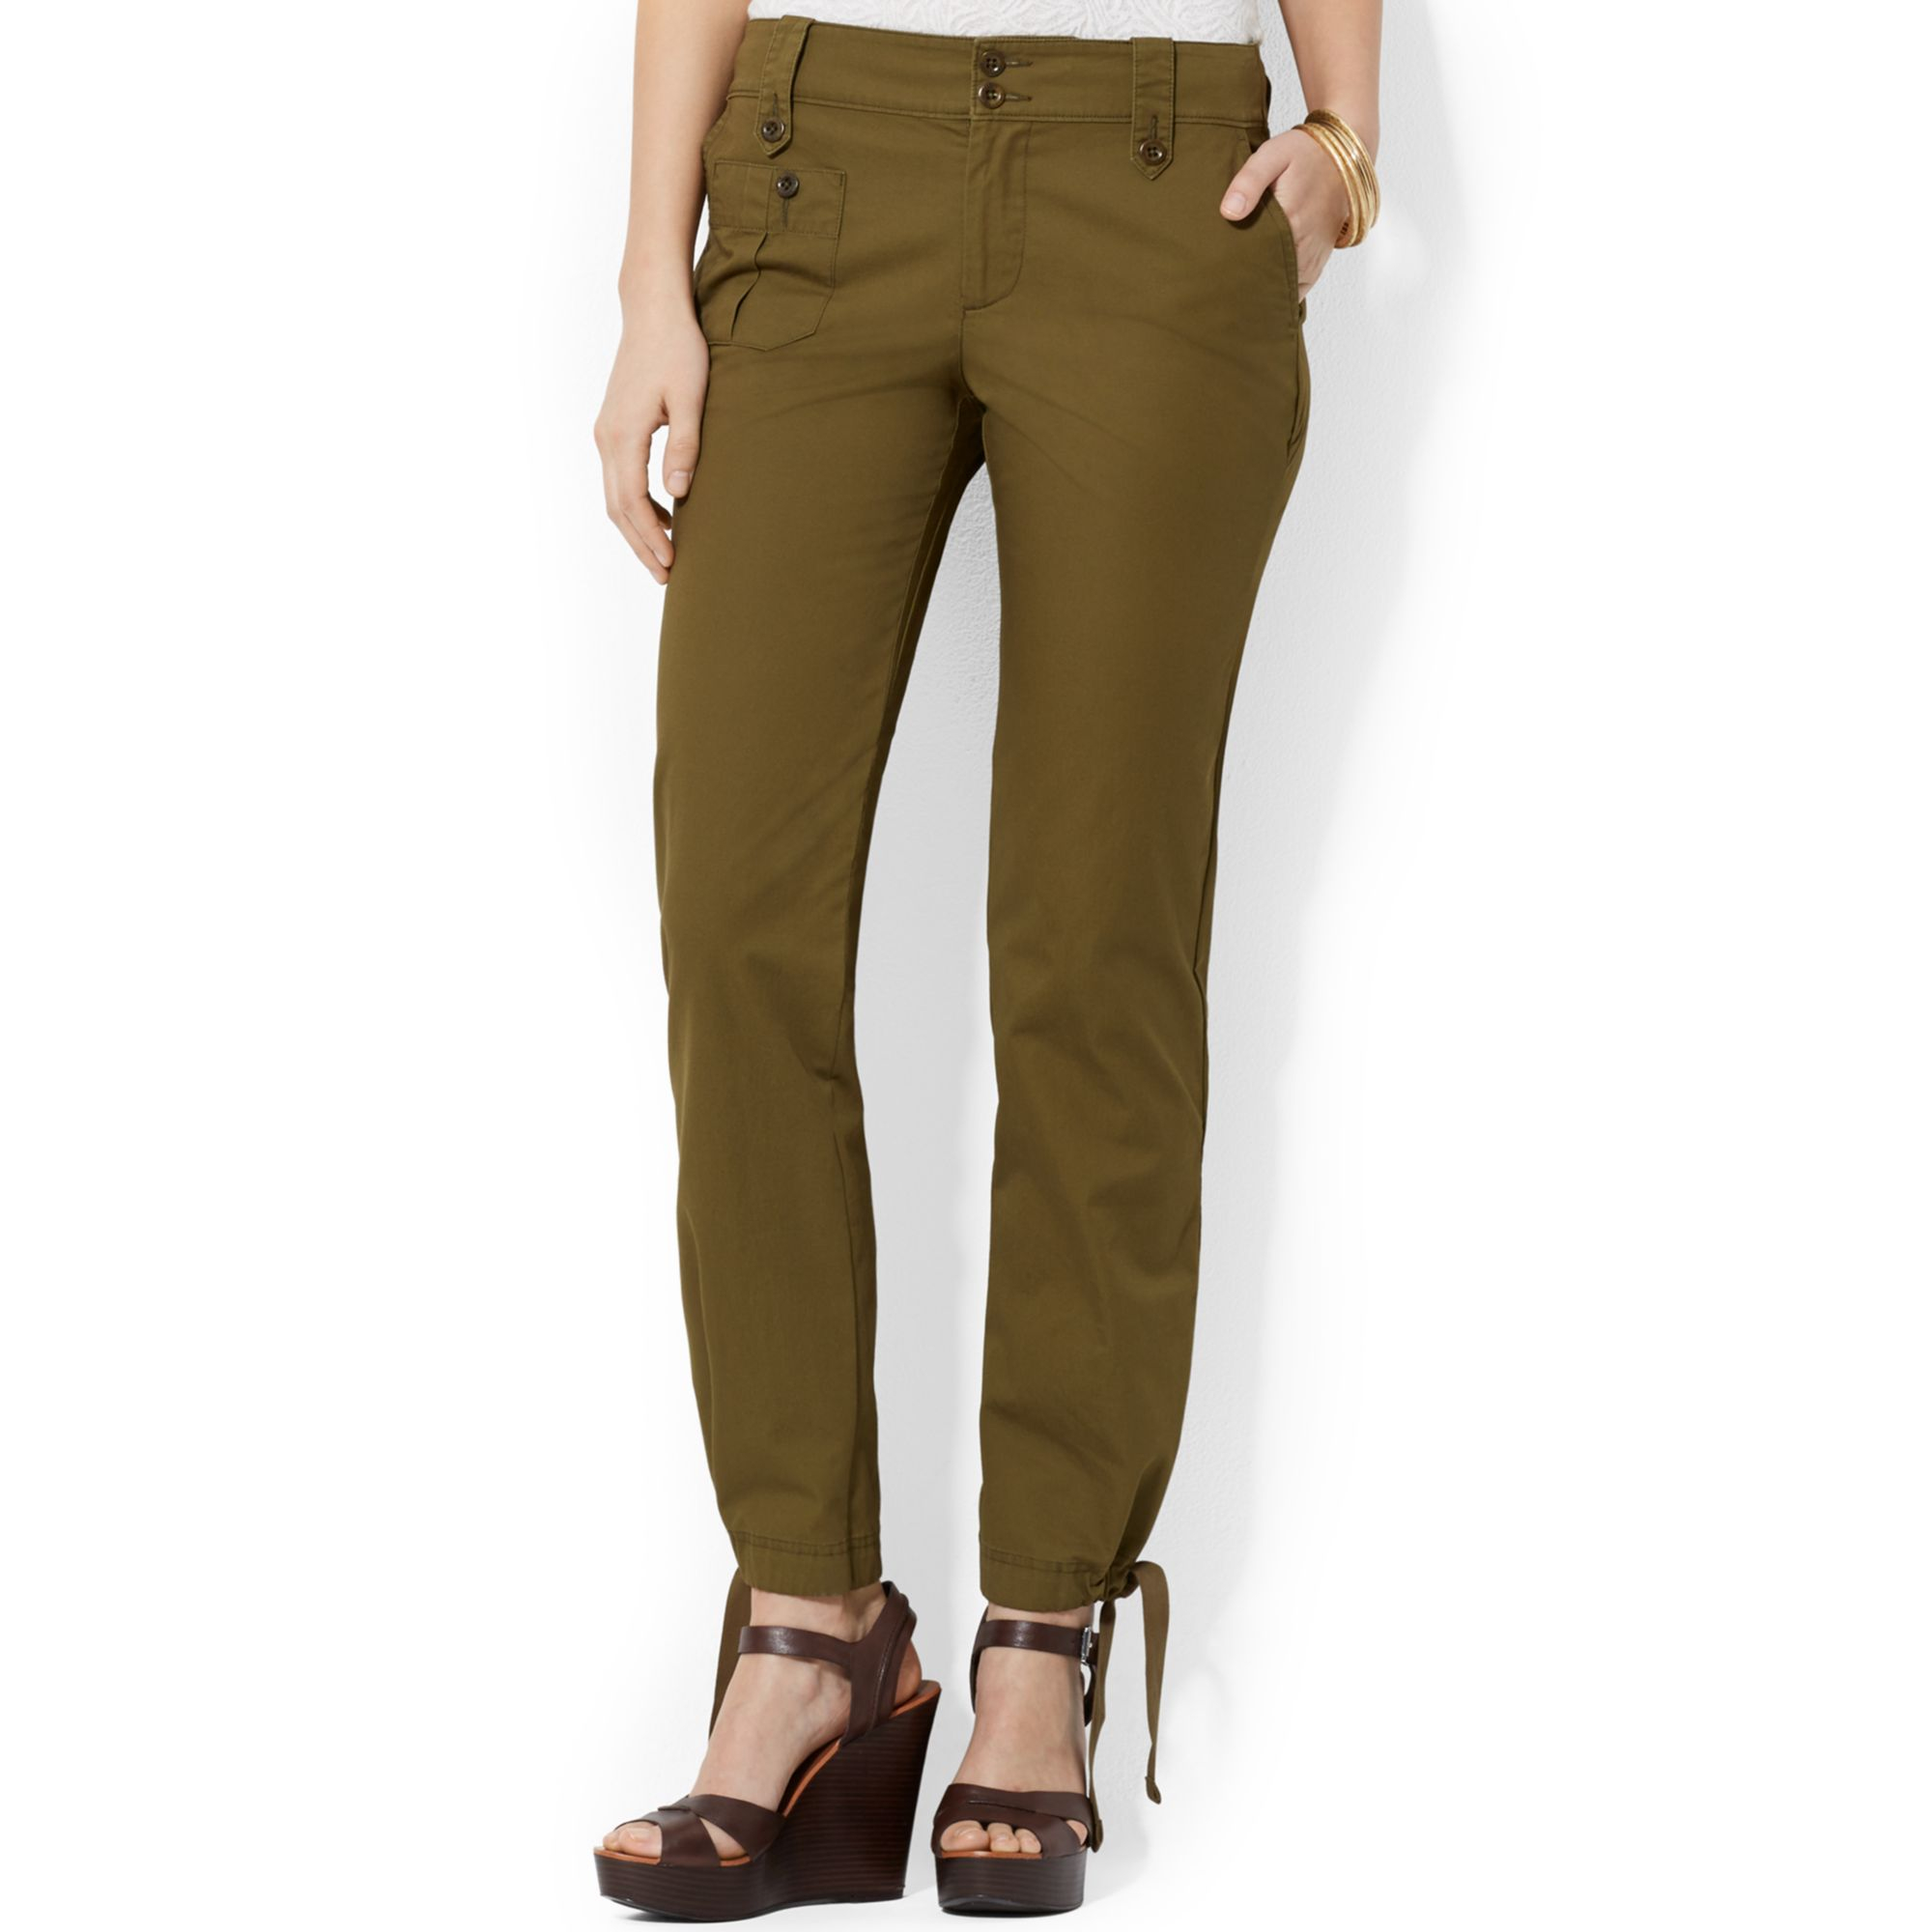 Fantastic  Skinny Cargo Pants For 60 Or Less  Belle Pants And Cargo Pants